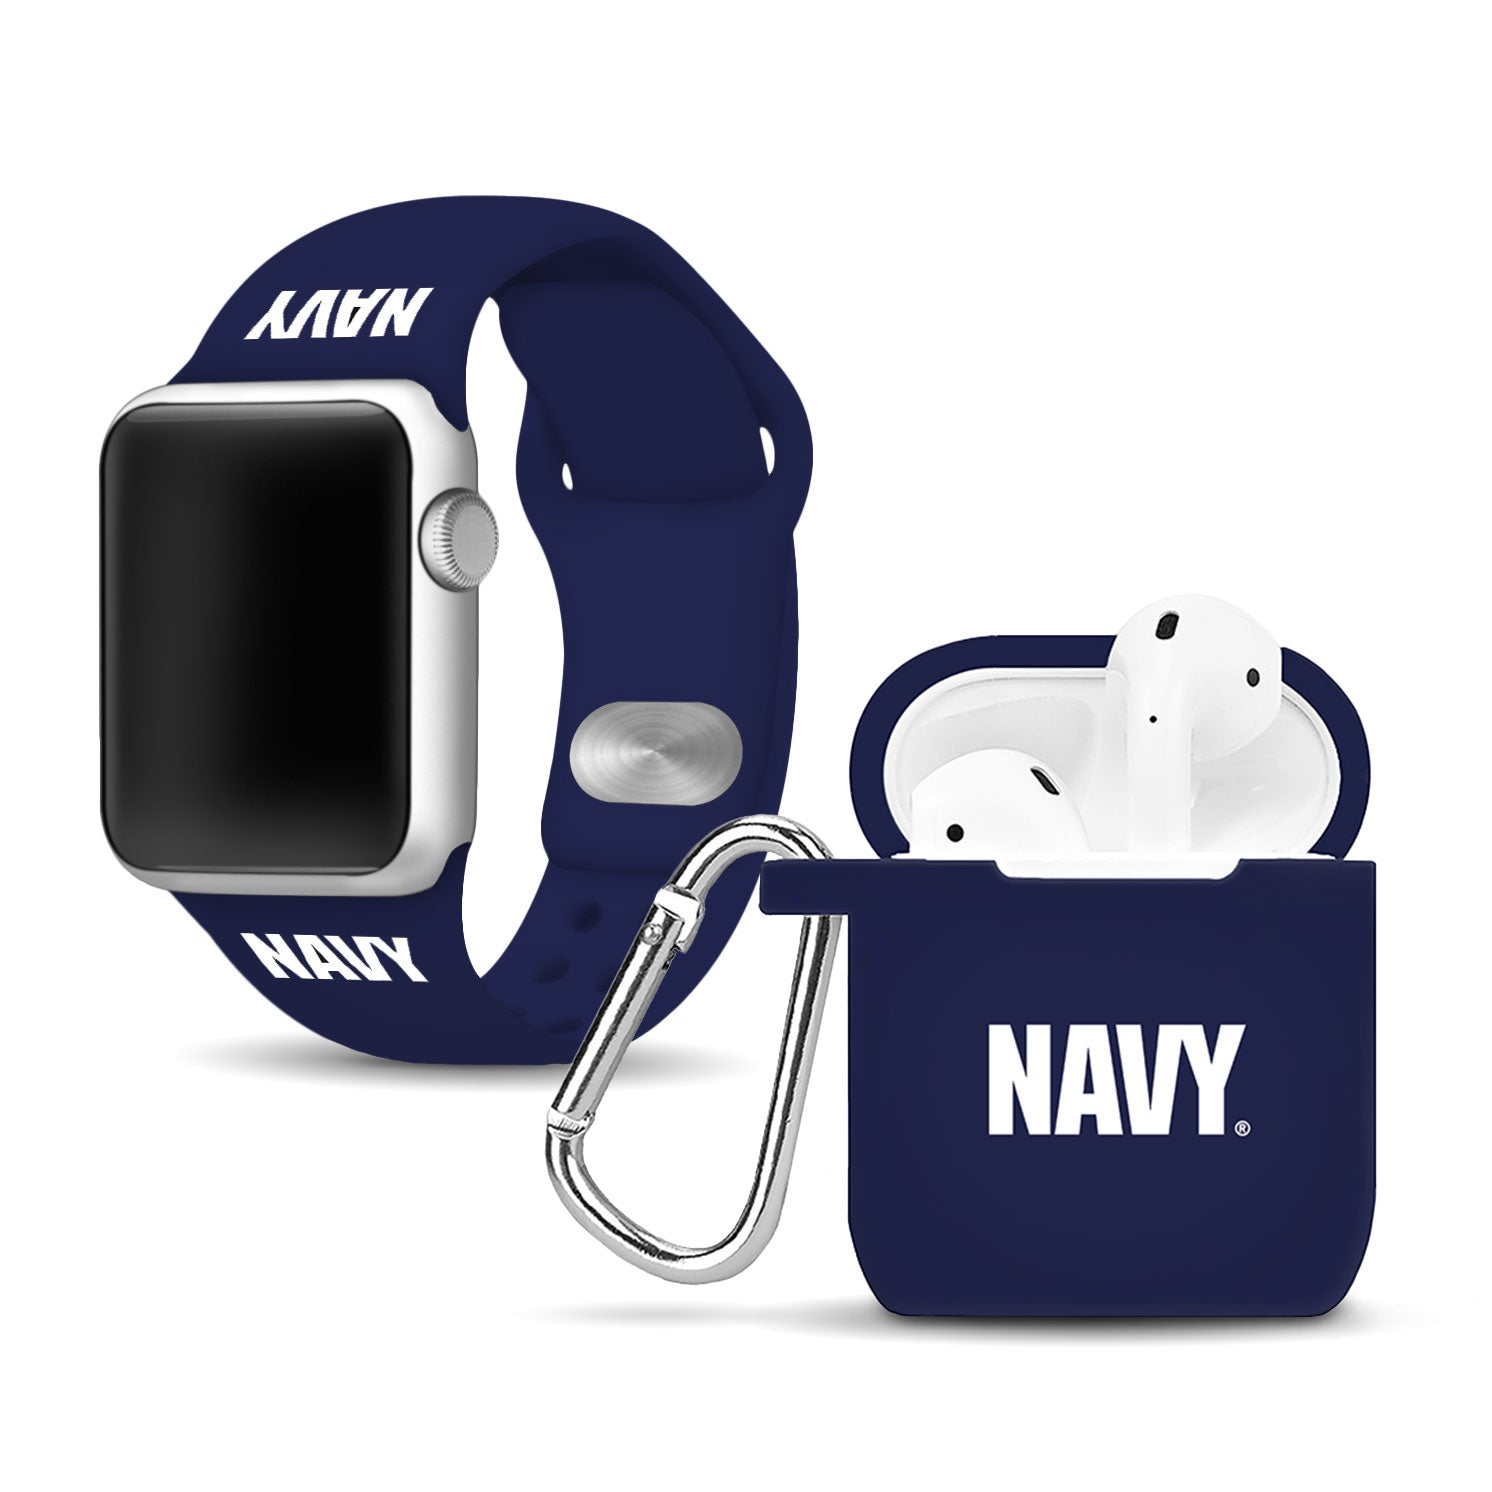 U.S. Navy Apple Combo Package - AffinityBands